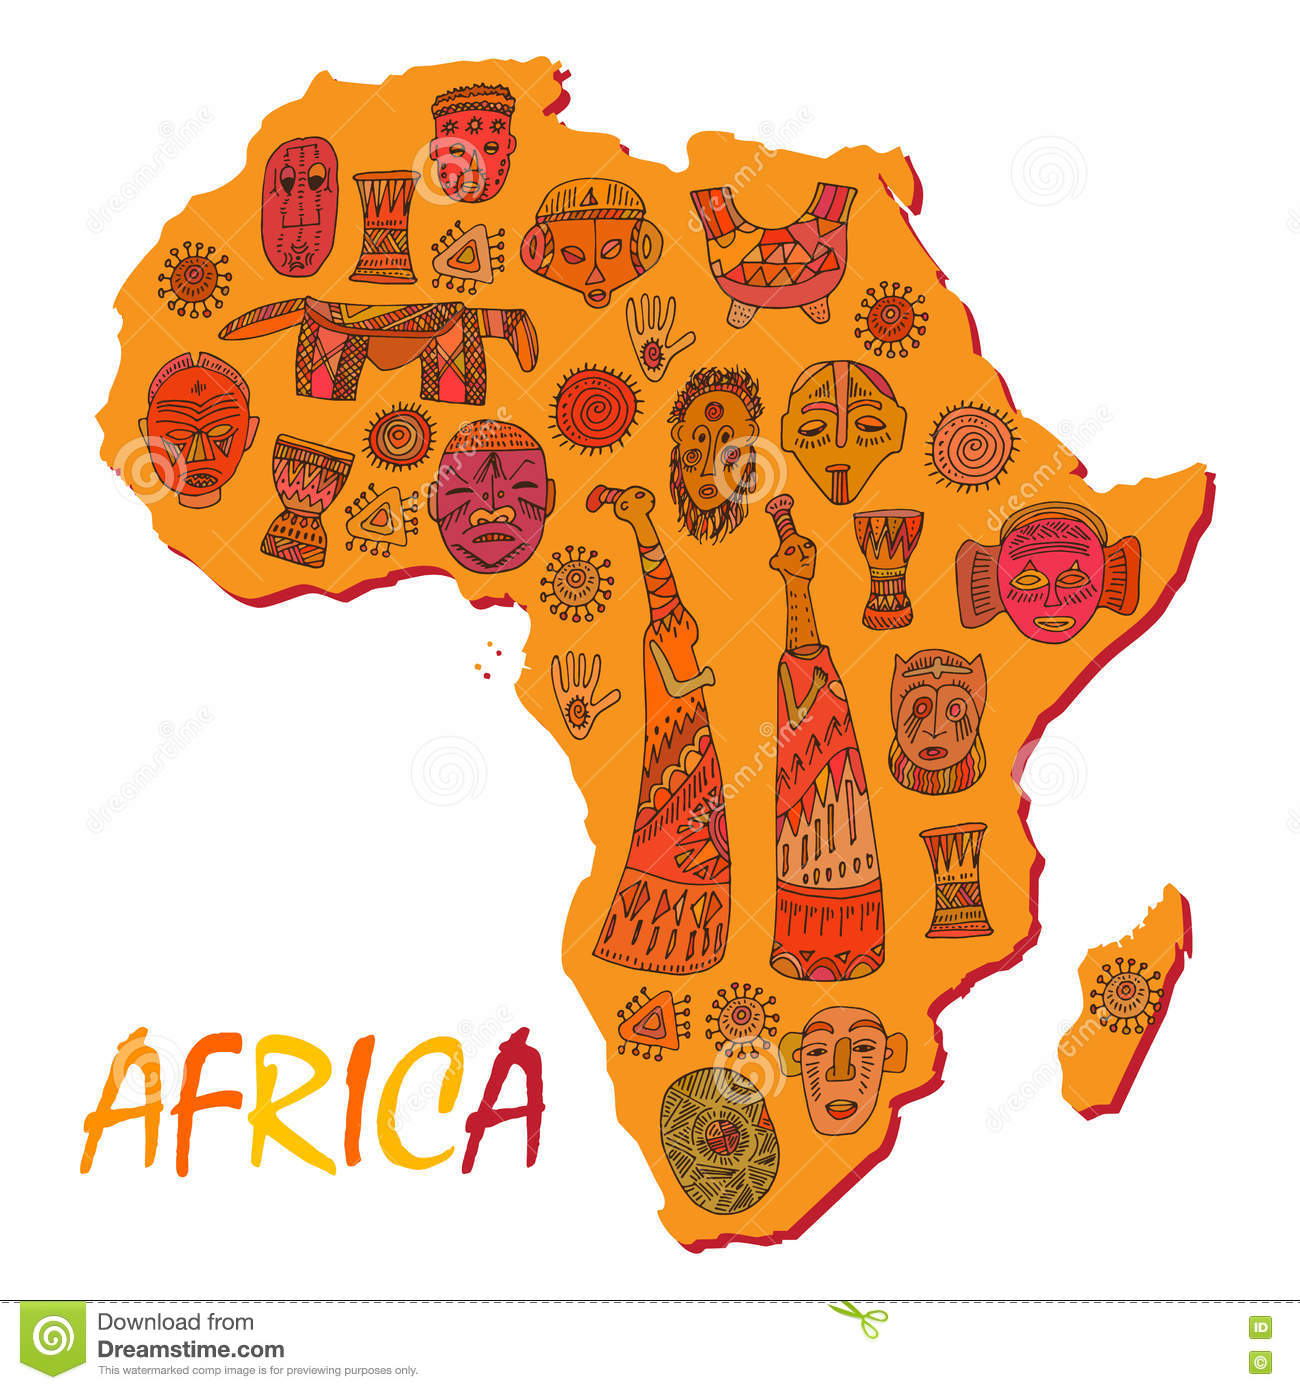 Africa map with different ancient symbols and signs stock vector africa map with different ancient symbols and signs buycottarizona